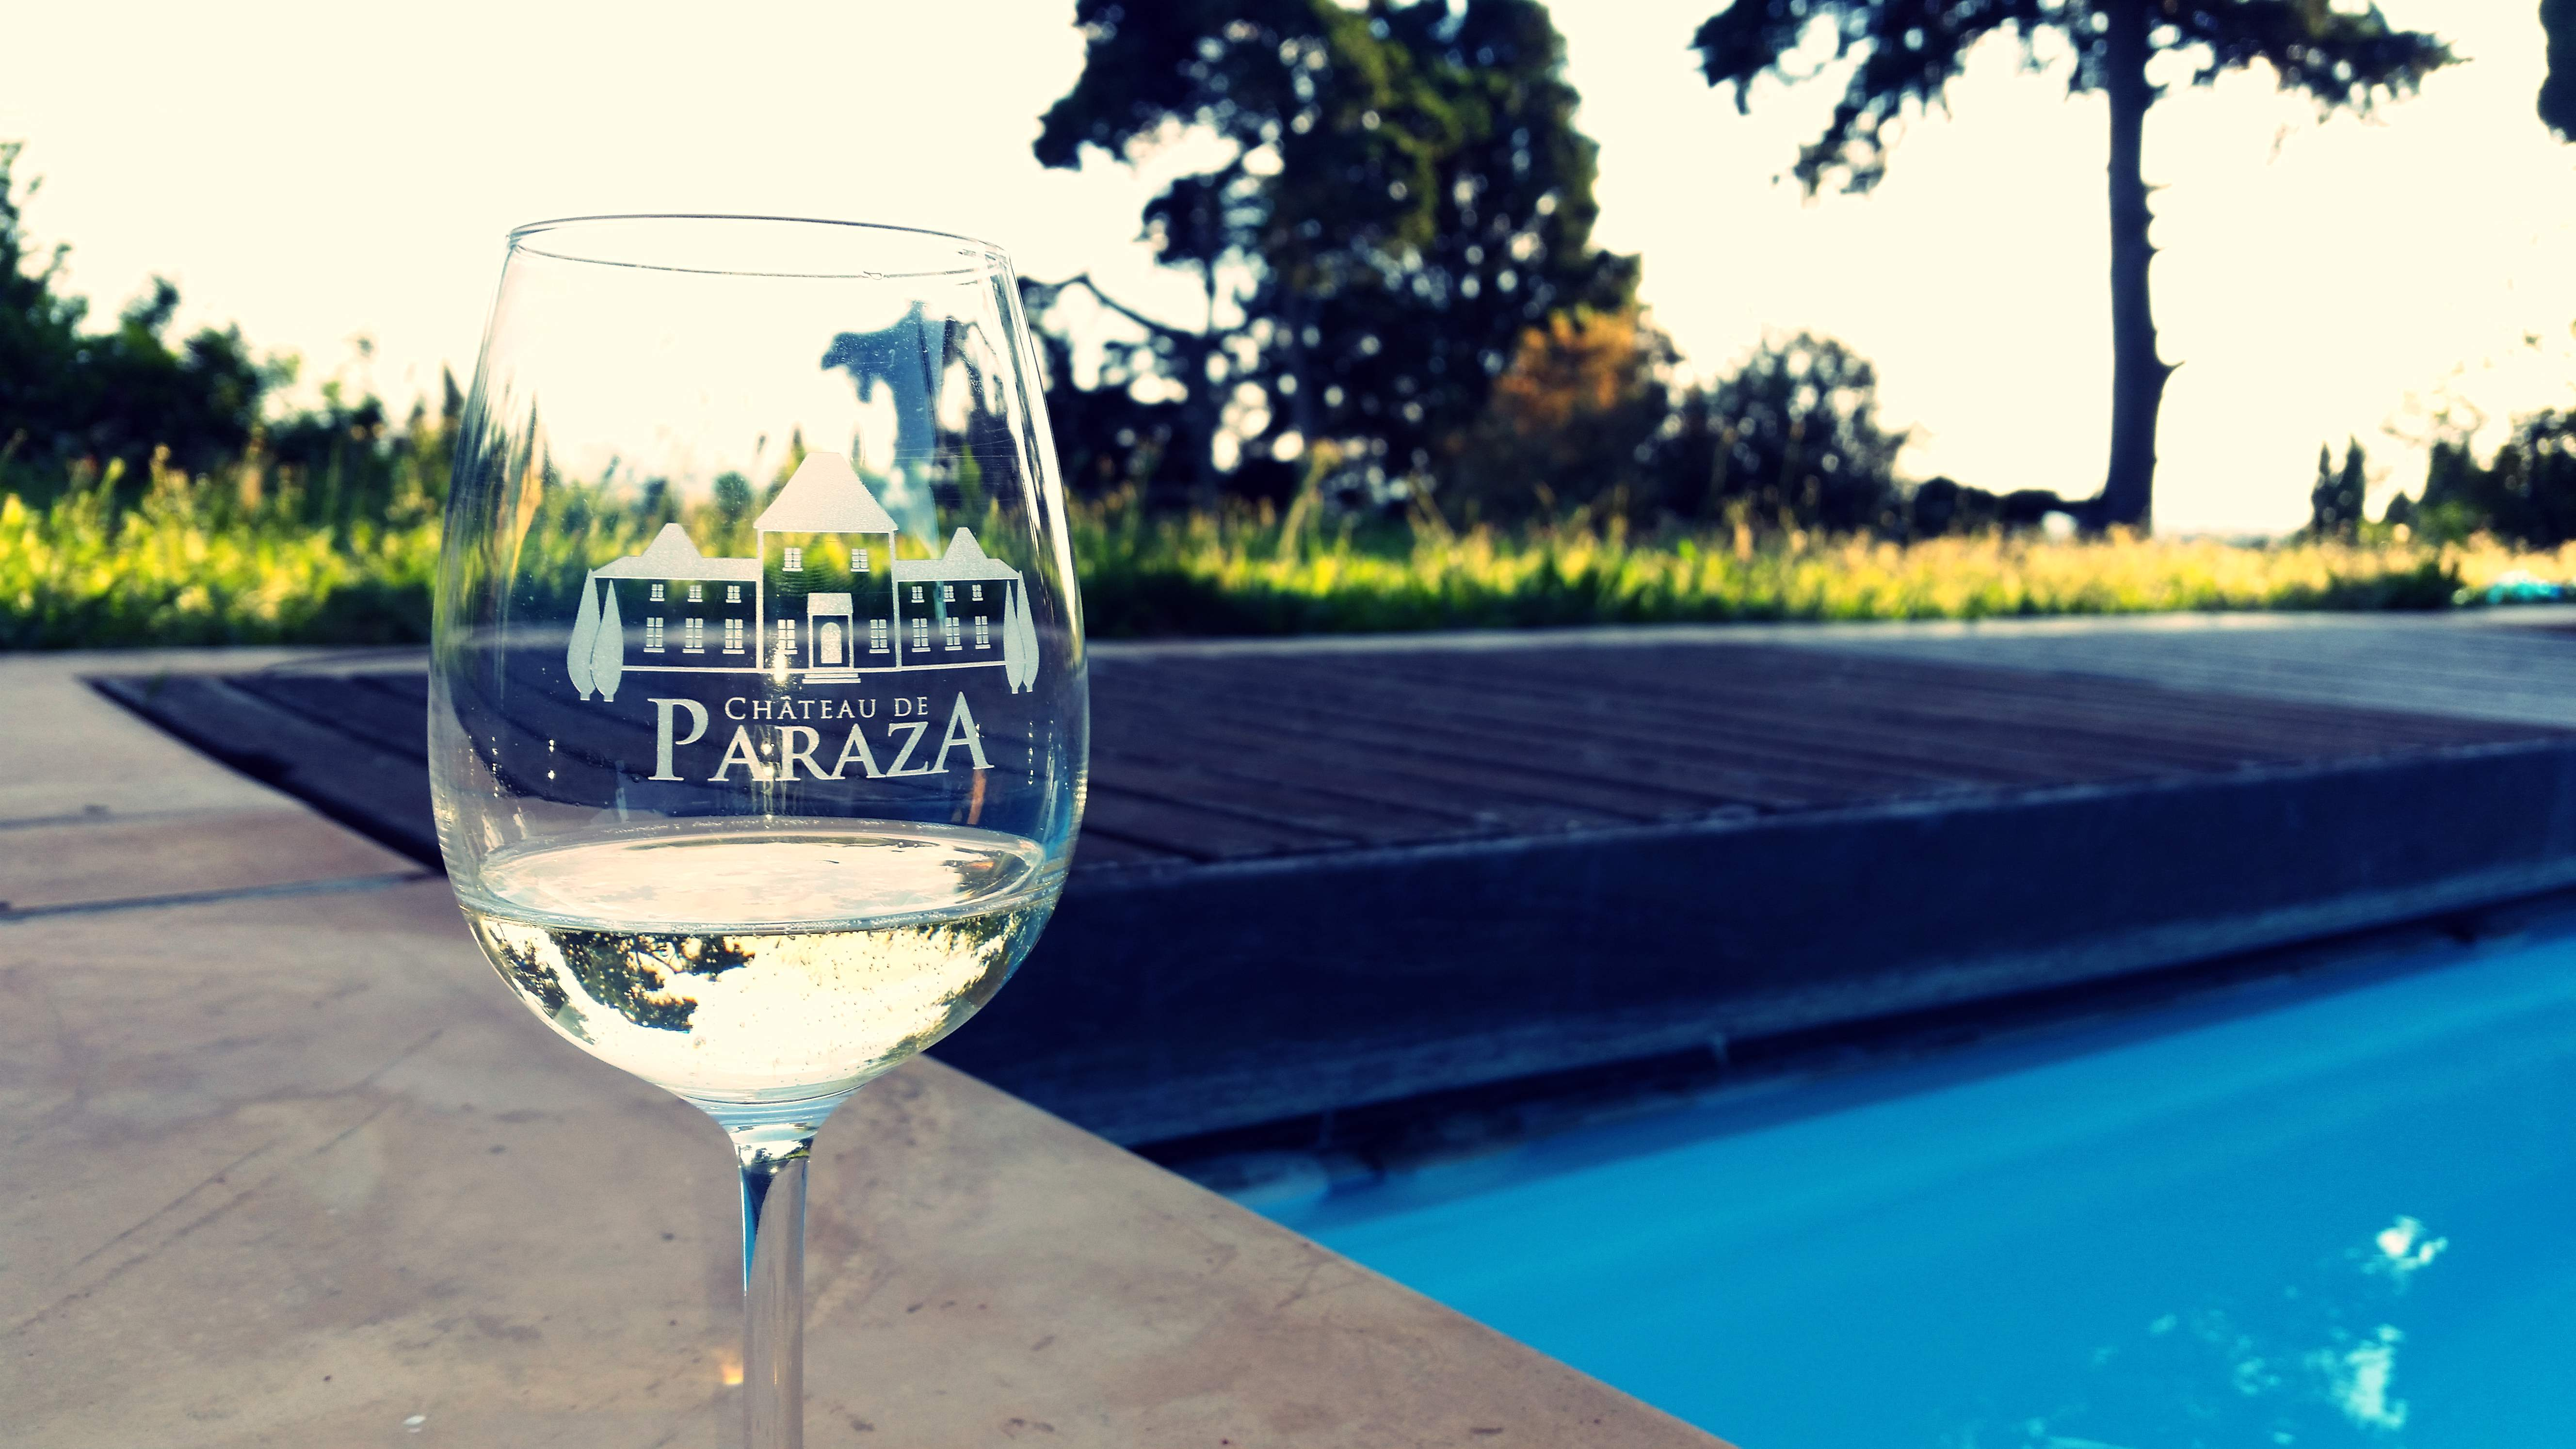 Chateau de Paraza by the pool